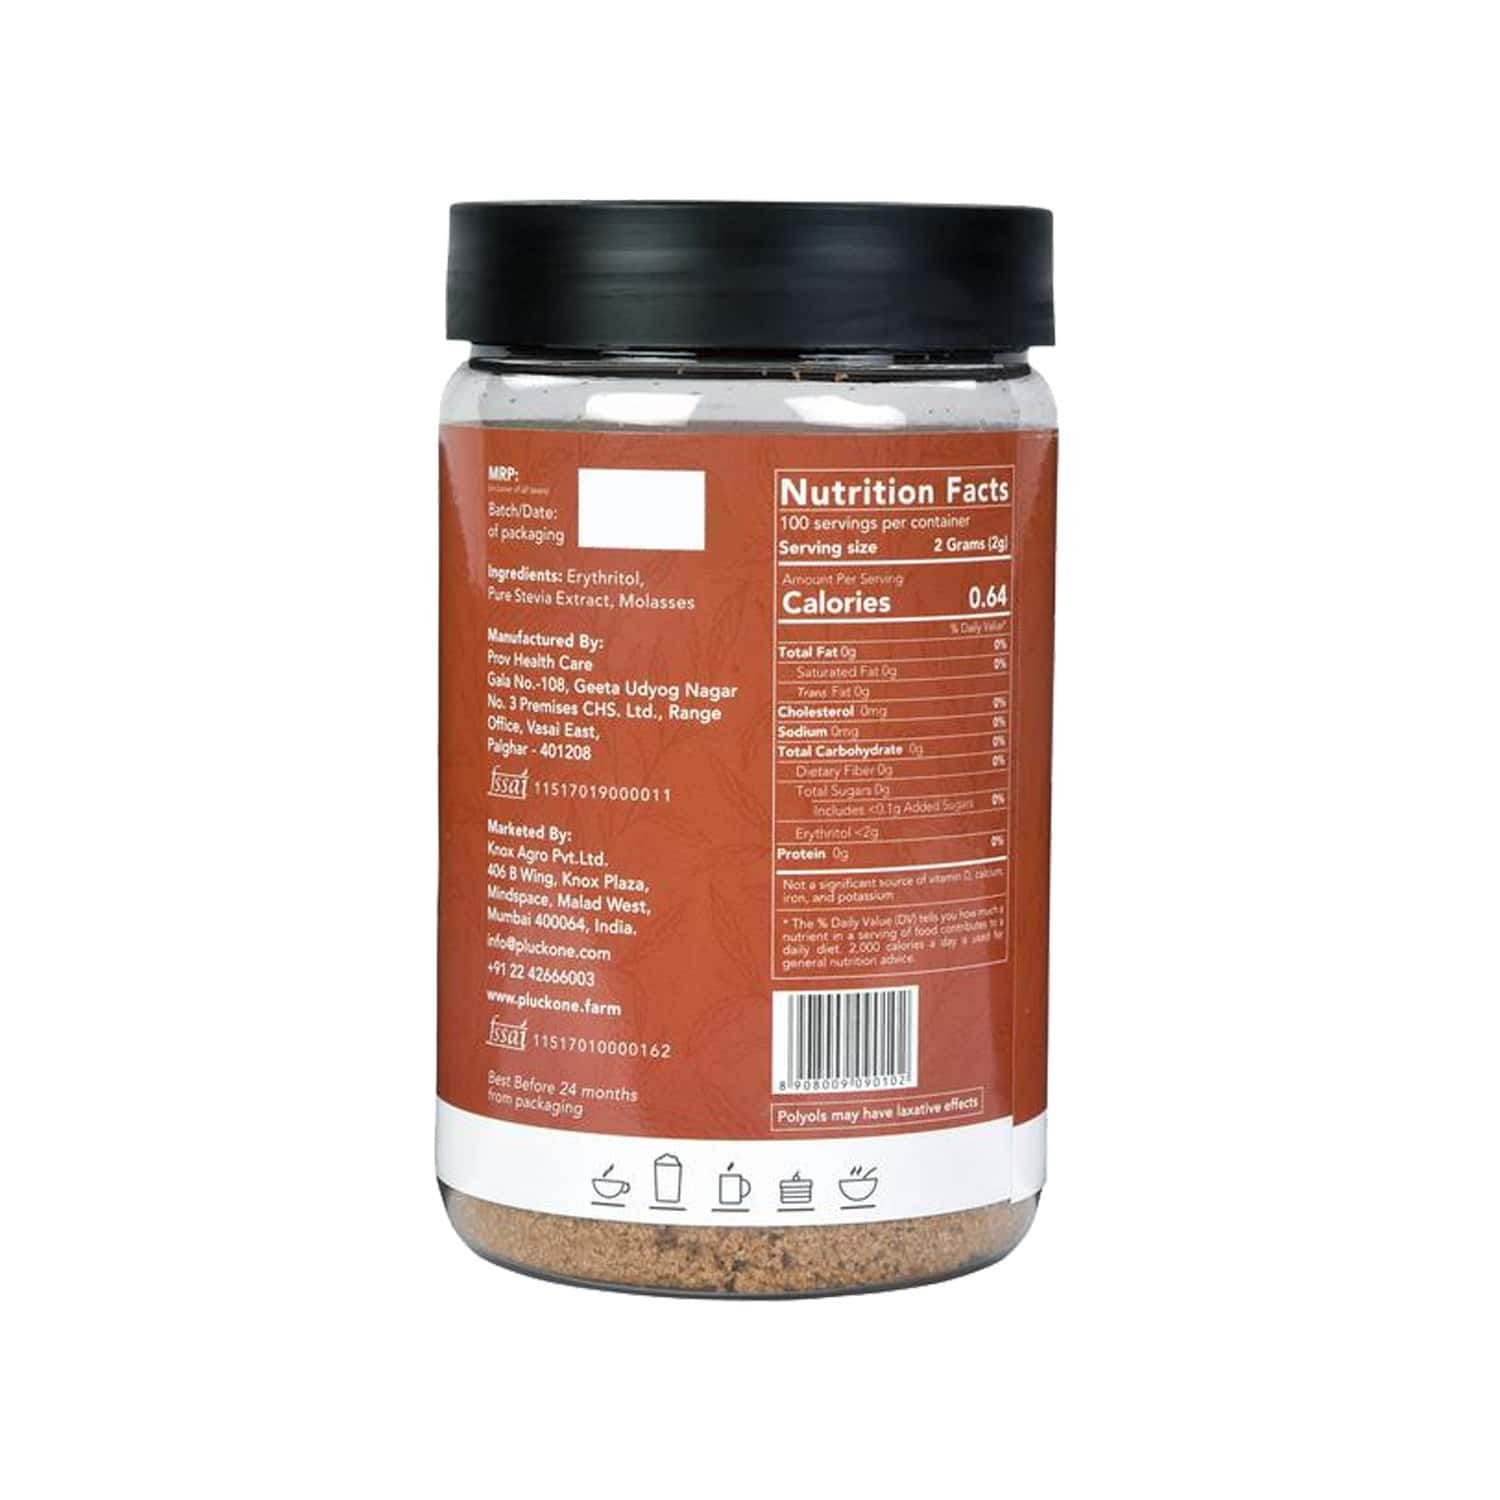 Pluck One Combo 7 - Stevia Brown + Stevia Brown - 200gms